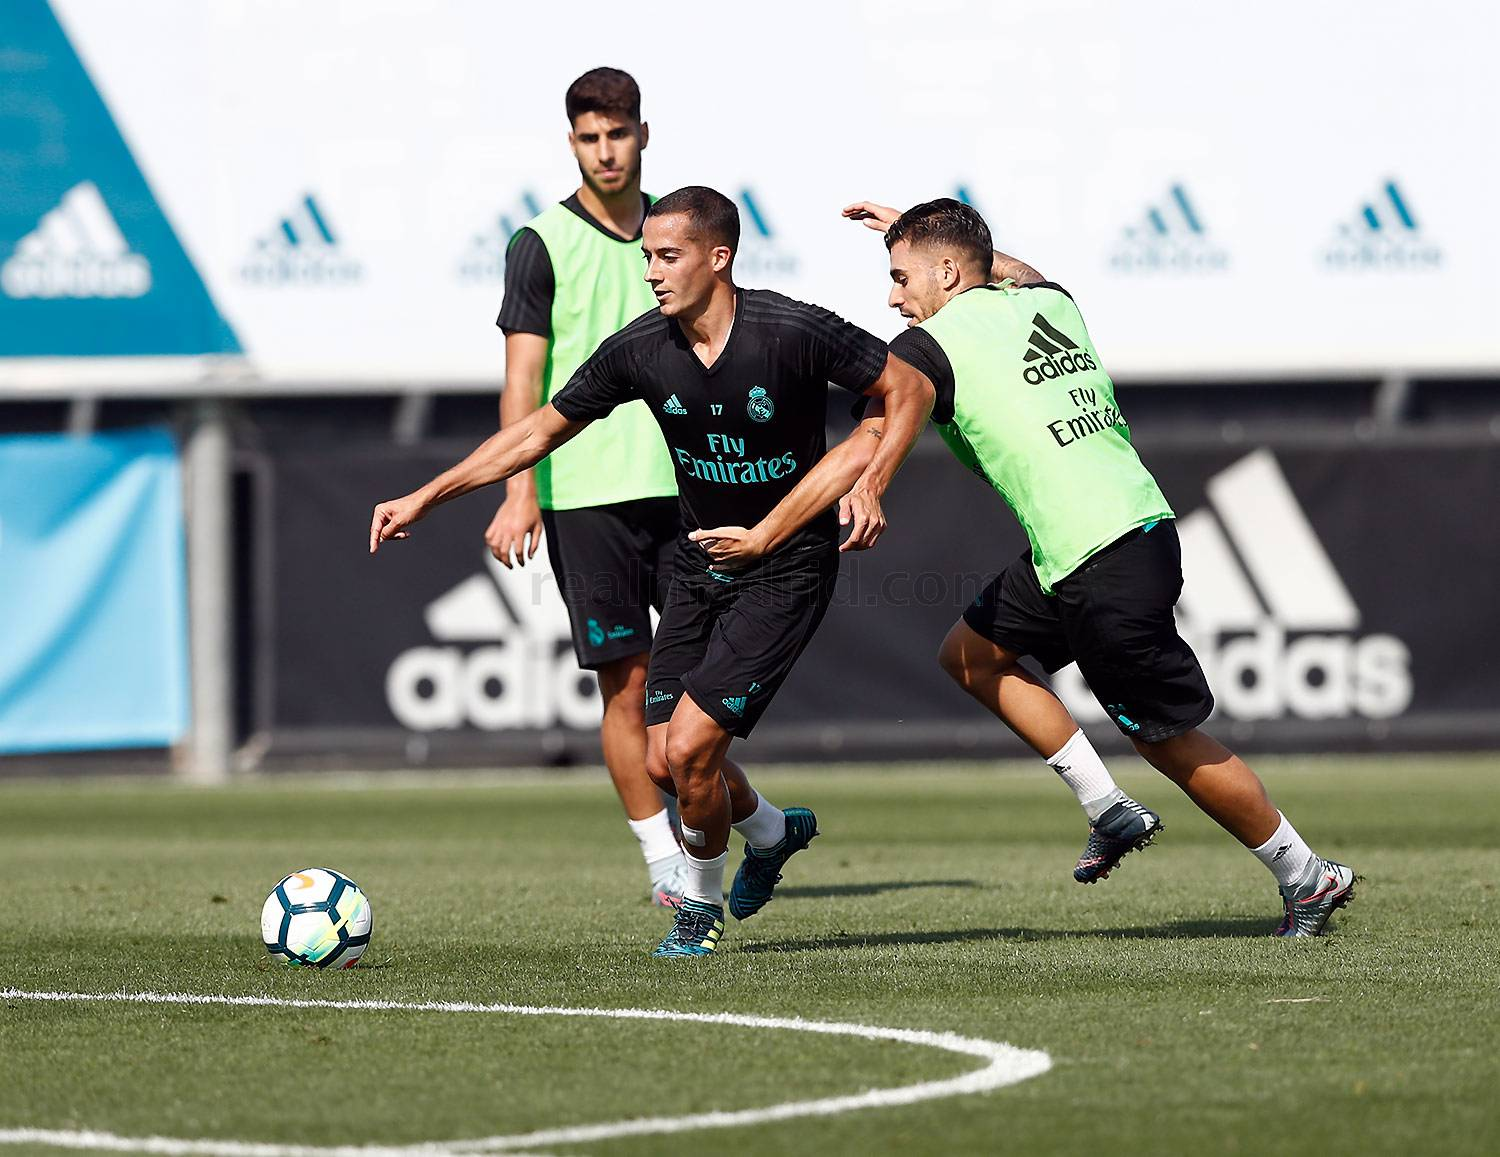 Real Madrid - Entrenamiento del Real Madrid - 21-09-2017